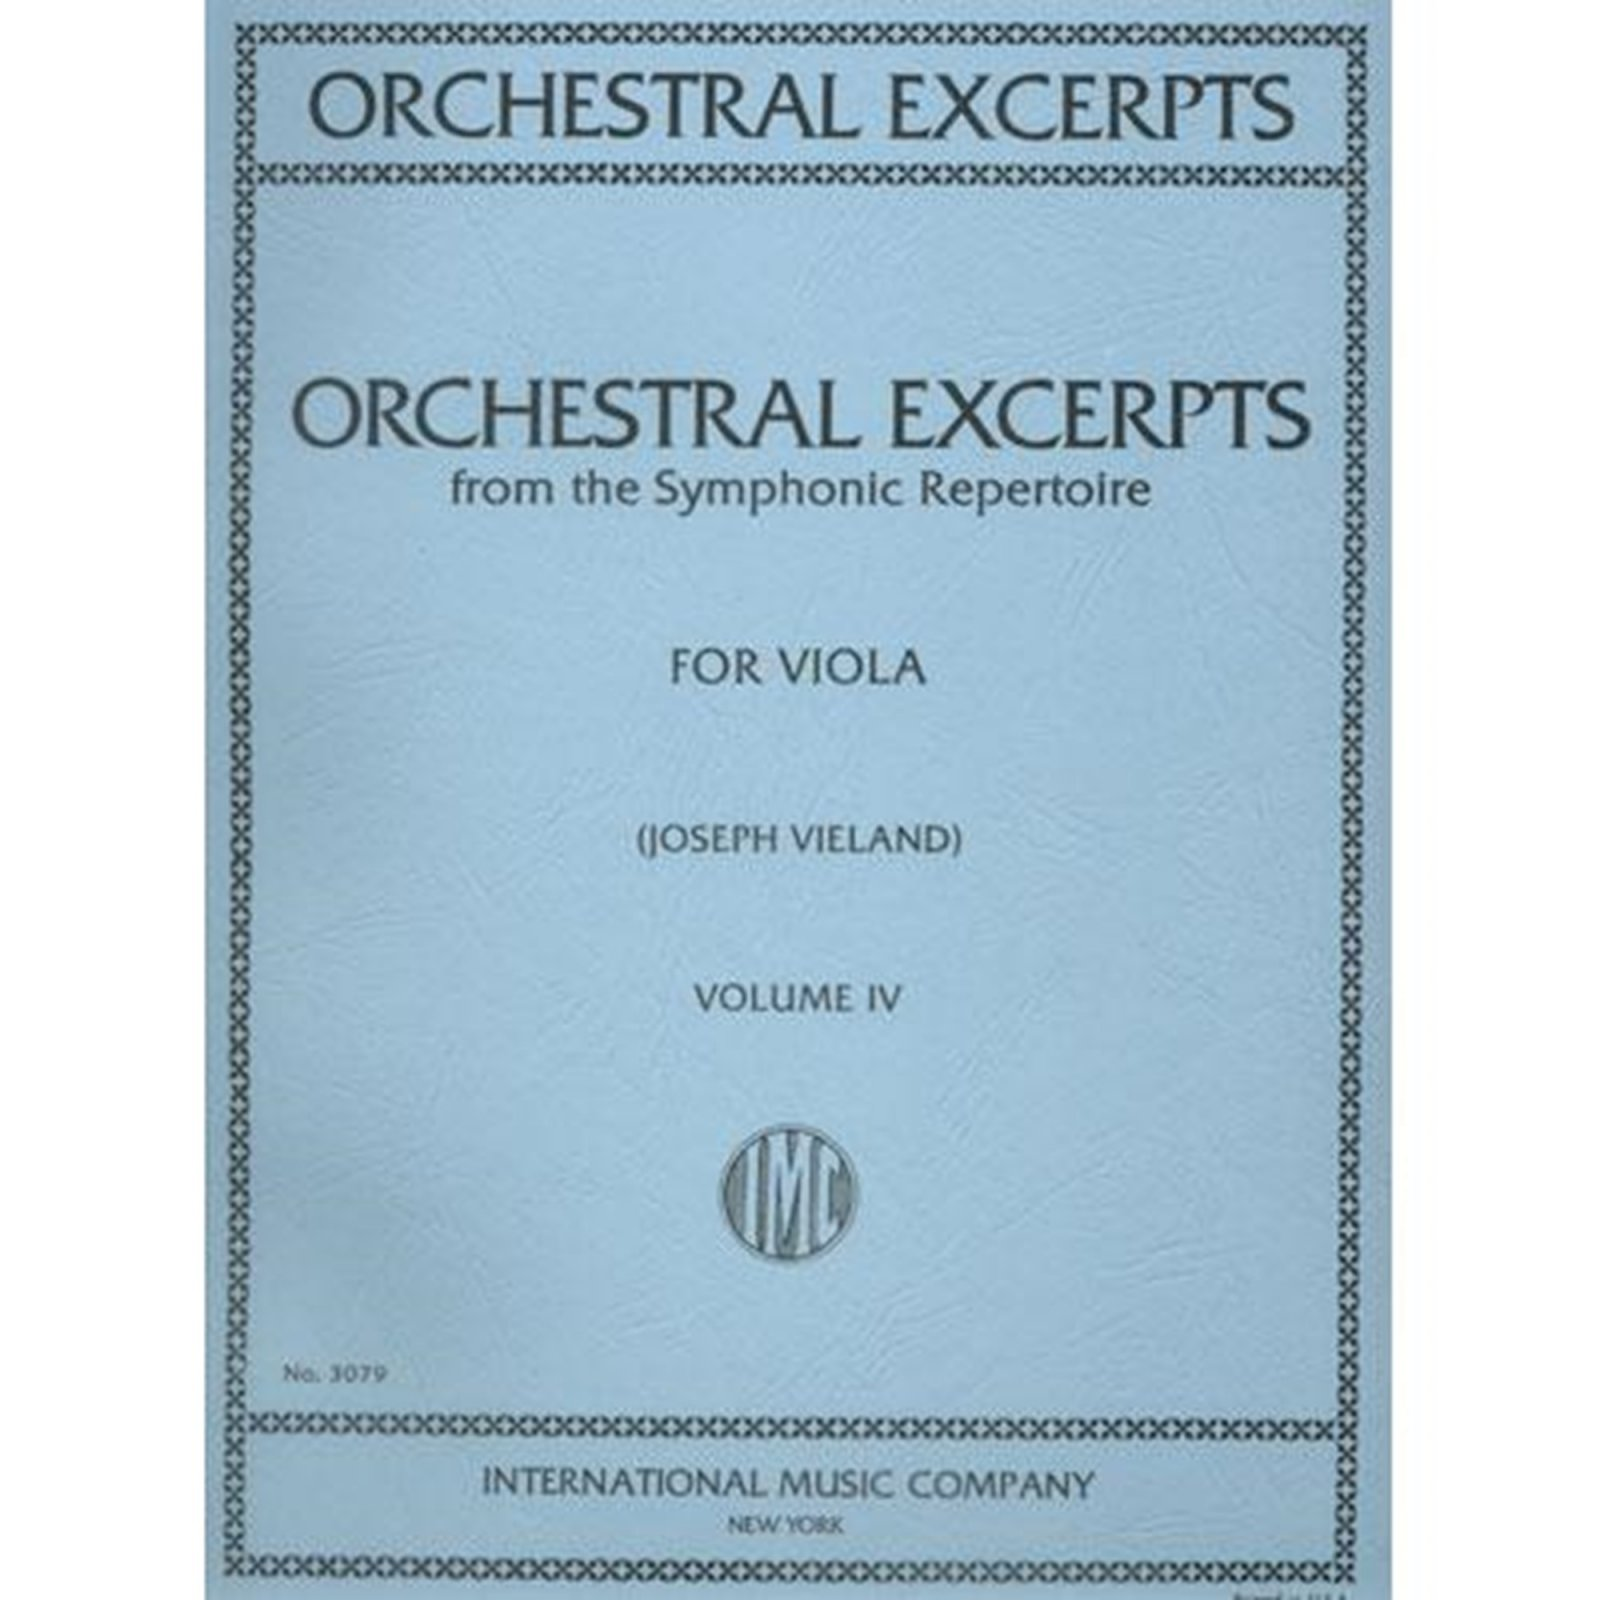 Orchestral Excerpts for Viola Vol. 4